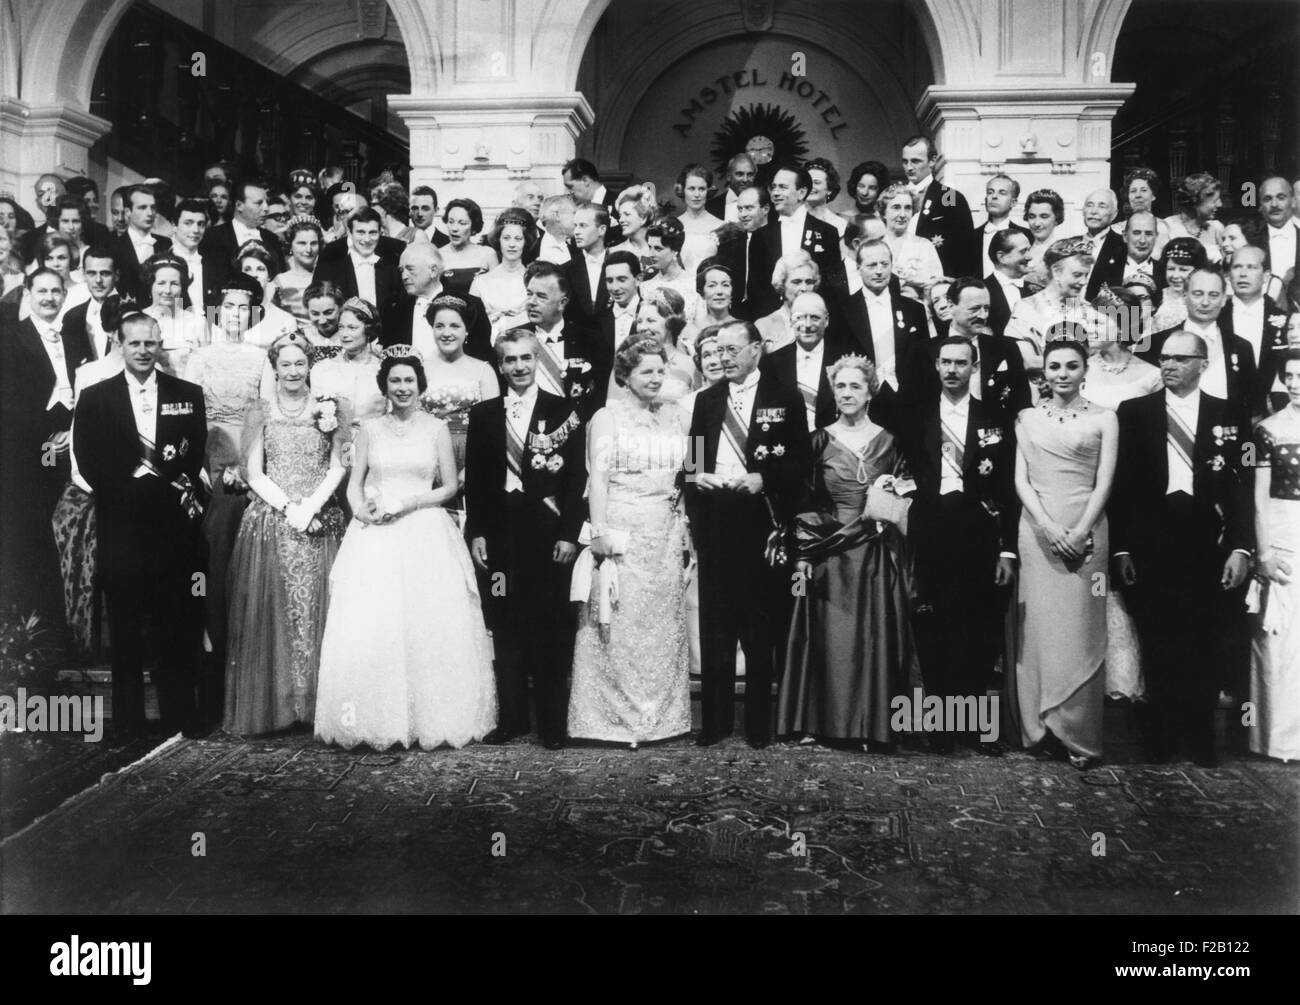 World wide royalty celebrate the silver wedding anniversary Queen Juliana and Prince Bernhard. At the Hague, Netherland, - Stock Image